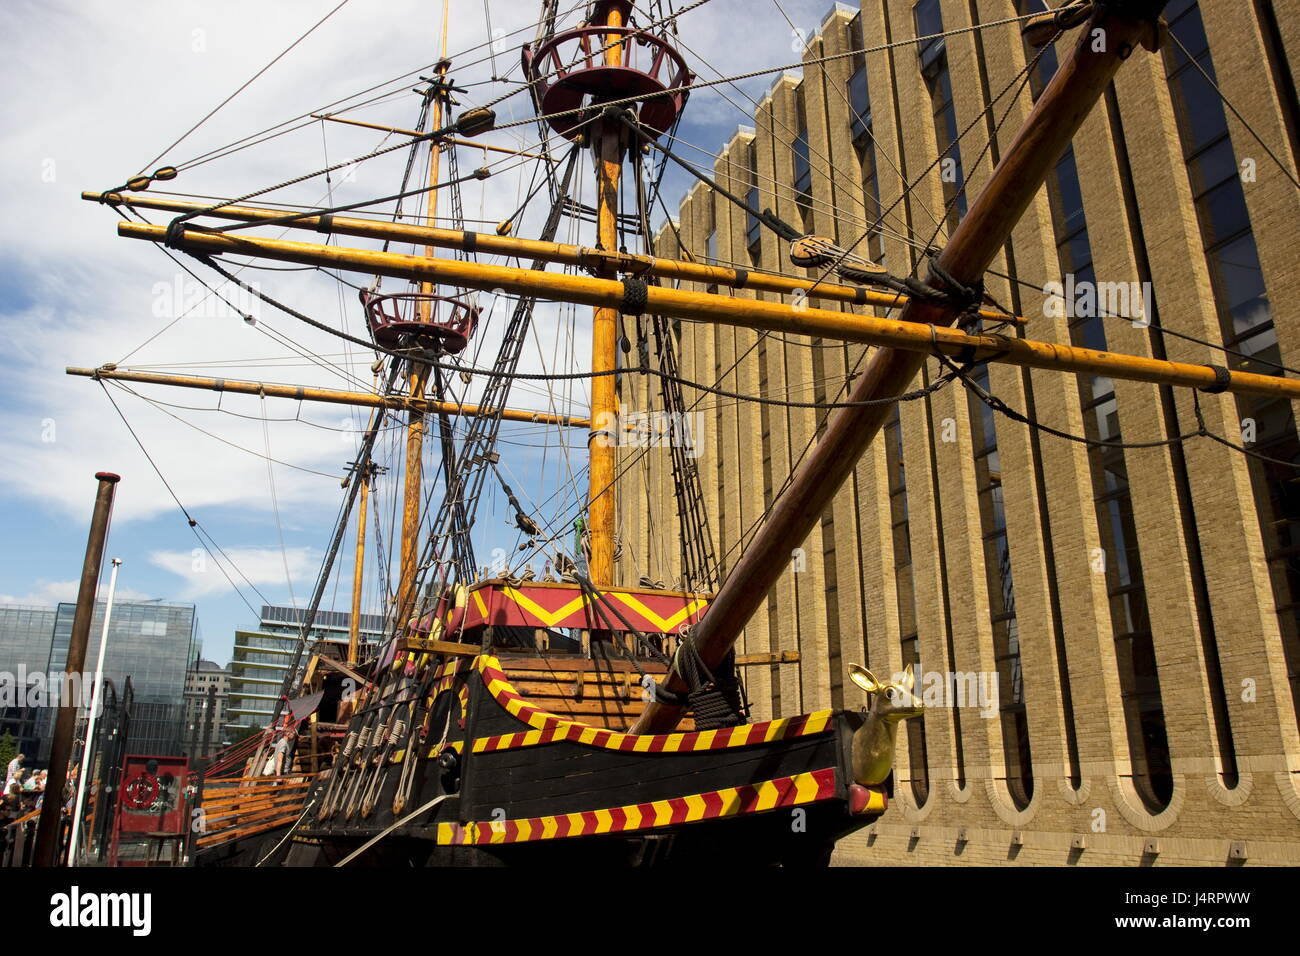 Golden Hinde 11 is a reconstruction of the original ship which was captained by Sir Francis Drake and launched in - Stock Image